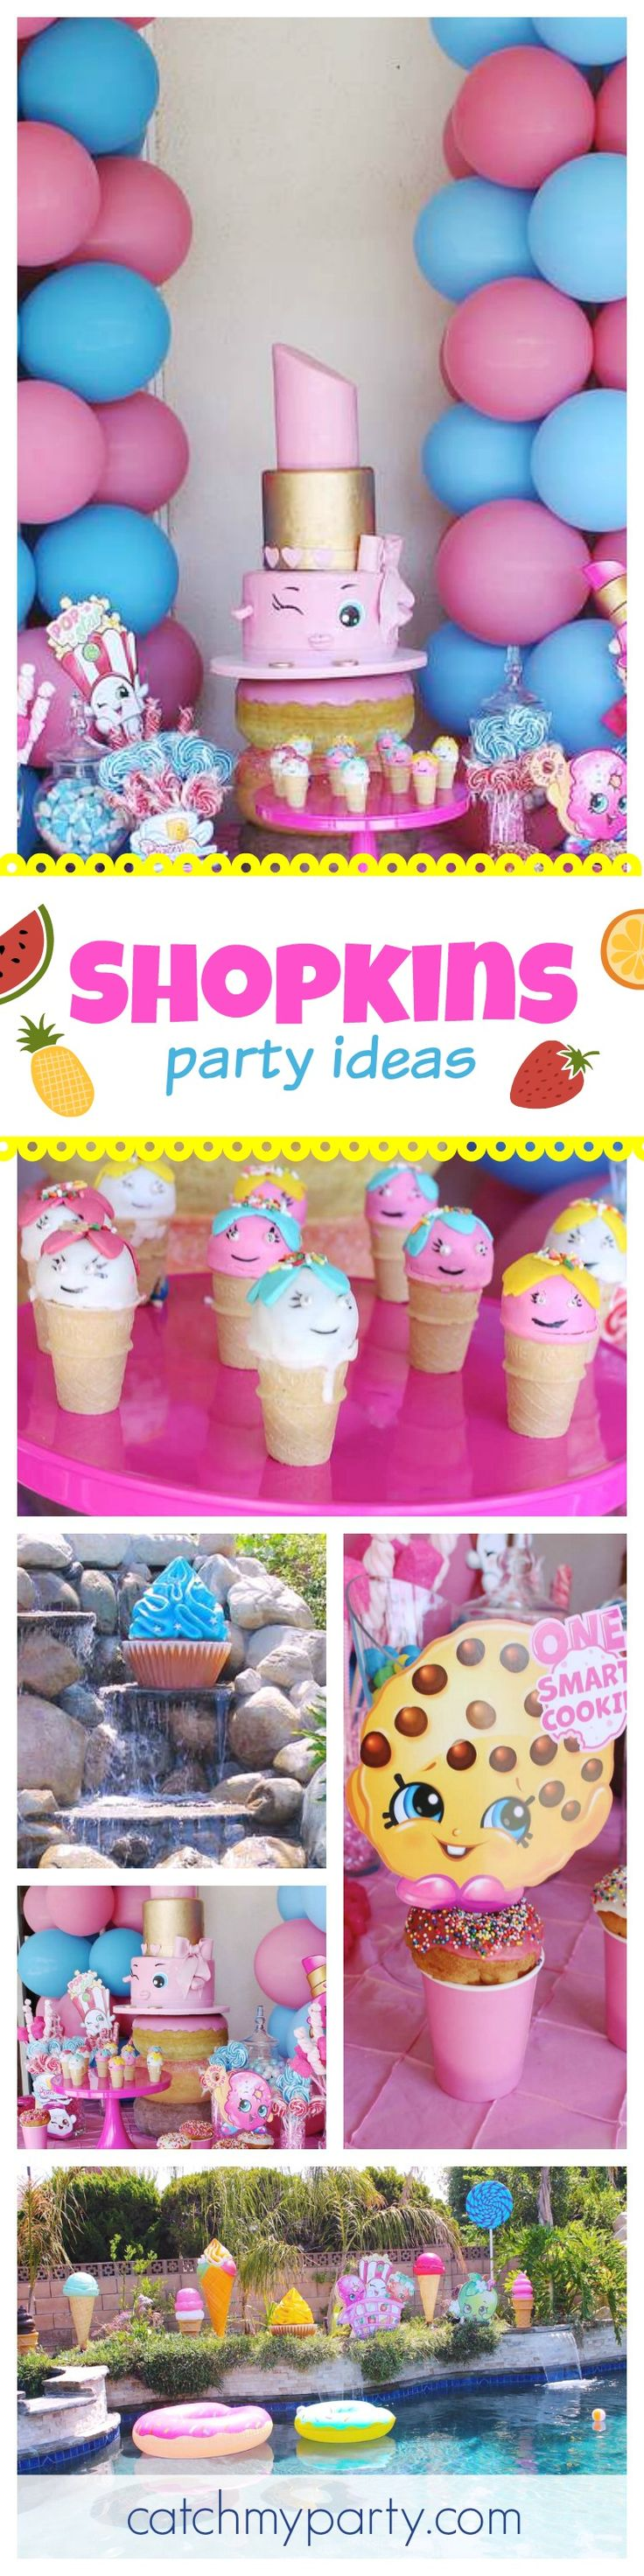 This Shopkins pool party is so much fun! The cake and pool decorations are so awesome!! See more party ideas at CatchMyParty.com